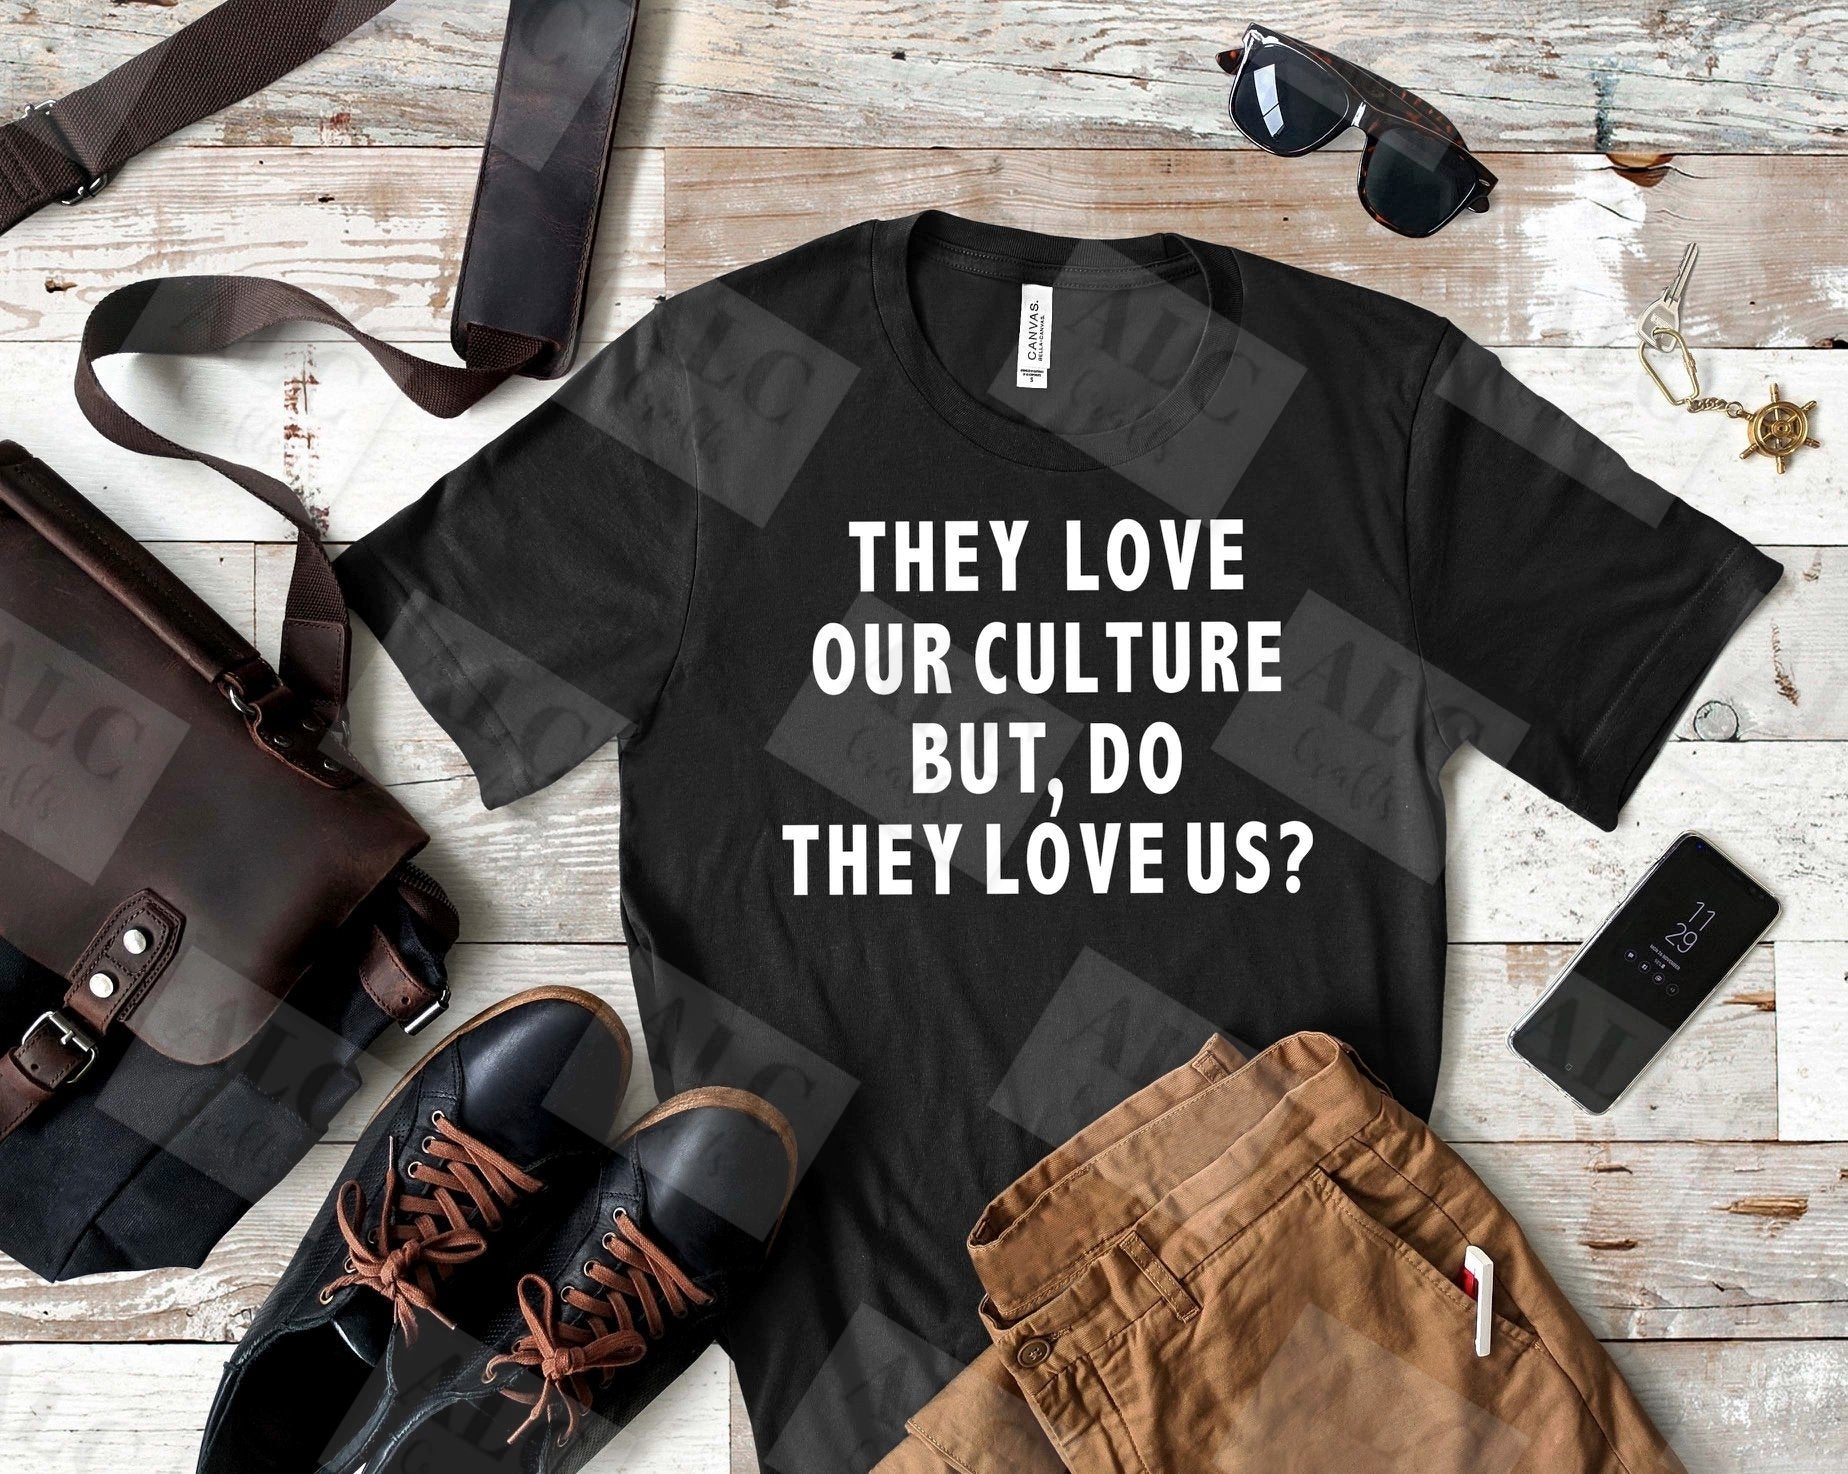 Heat Transfer Vinyl (HTV) They Love Our Culture But Do They Love Us T-Shirt